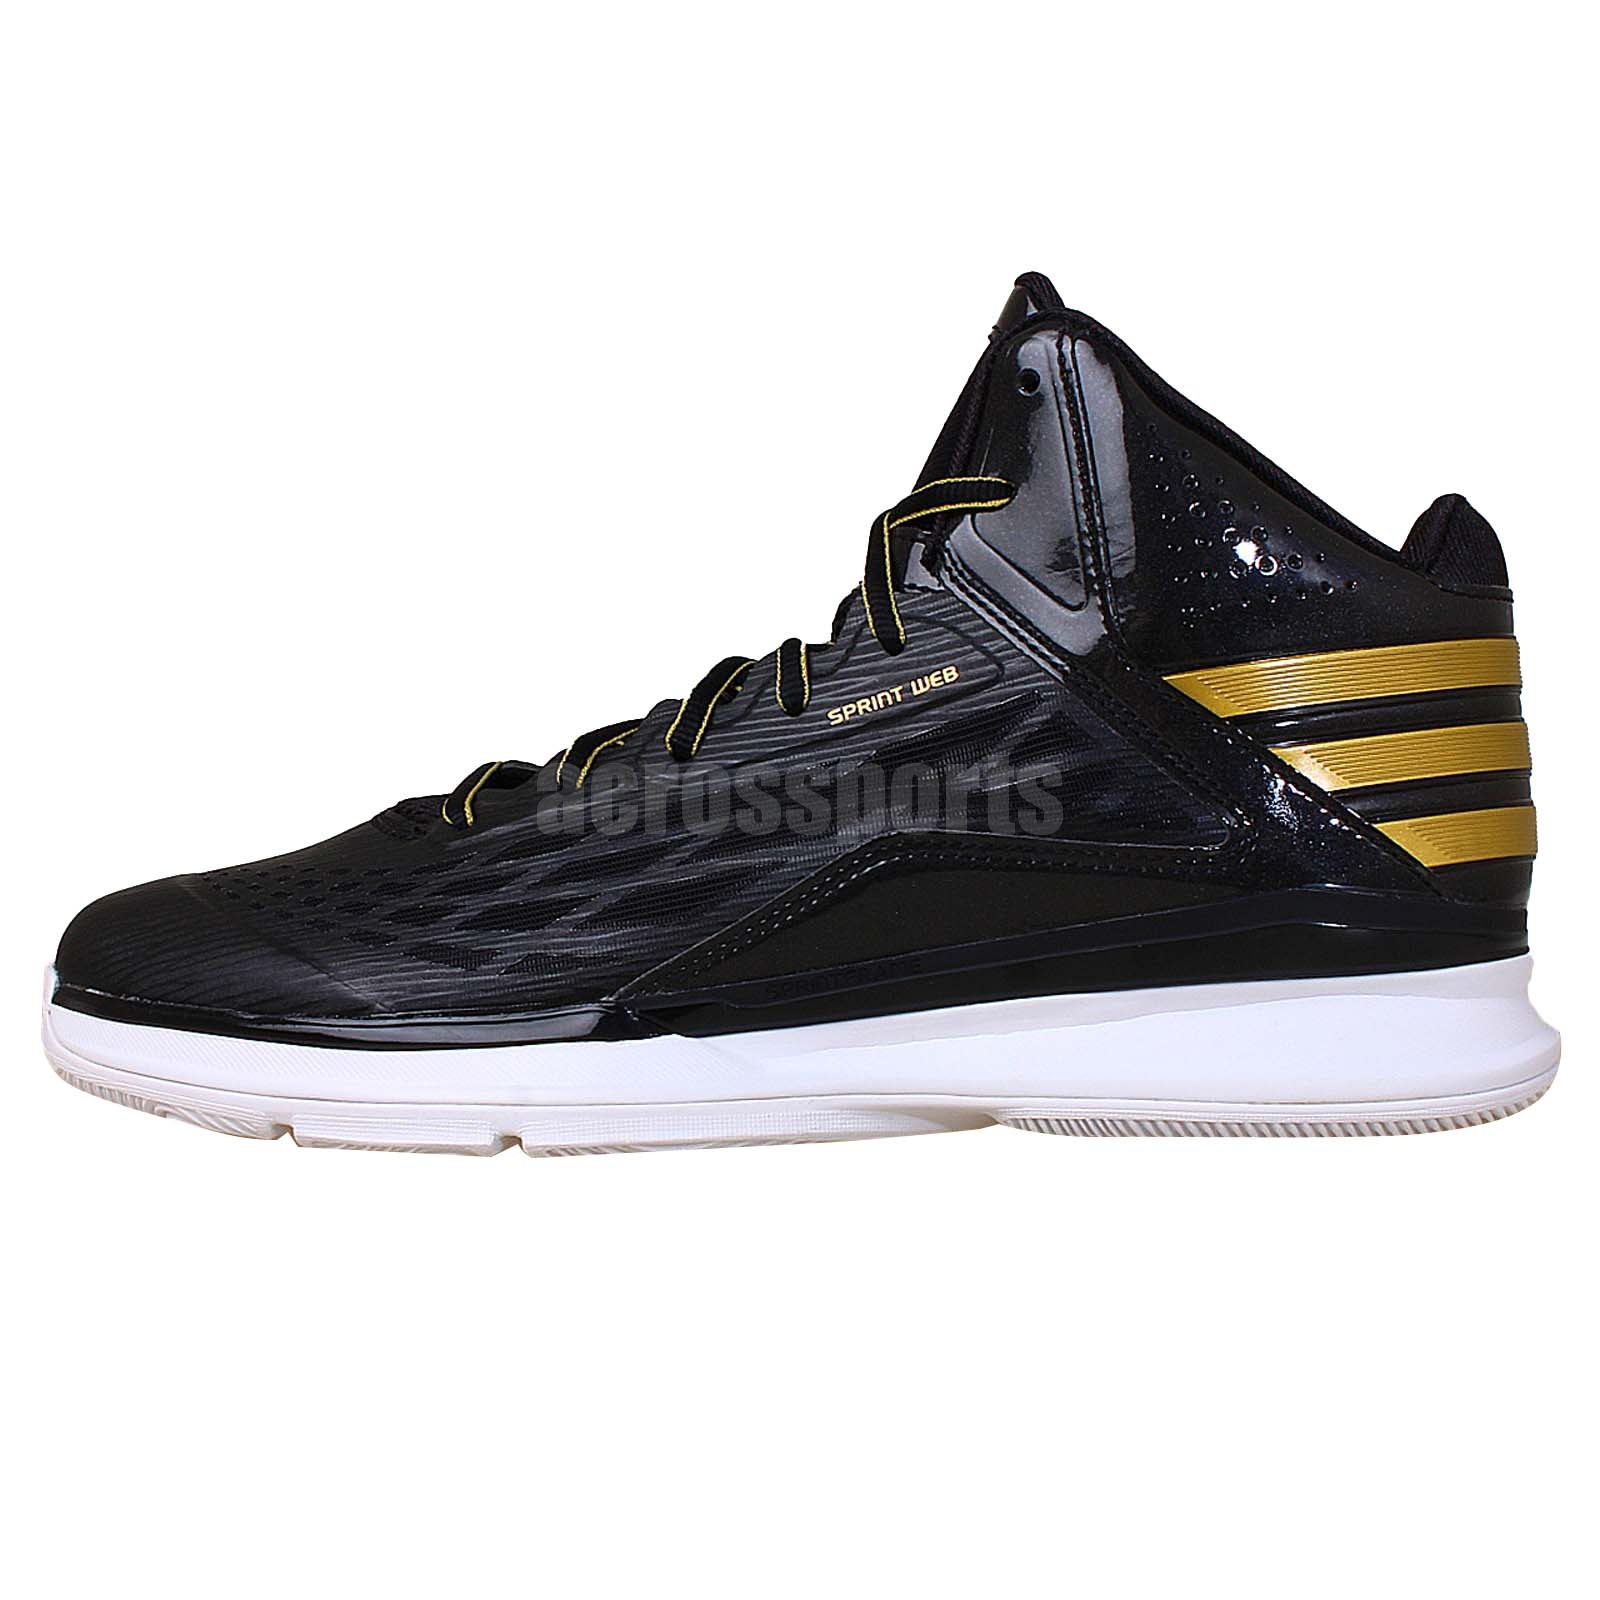 adidas transcend black gold 2014 mens basketball shoes